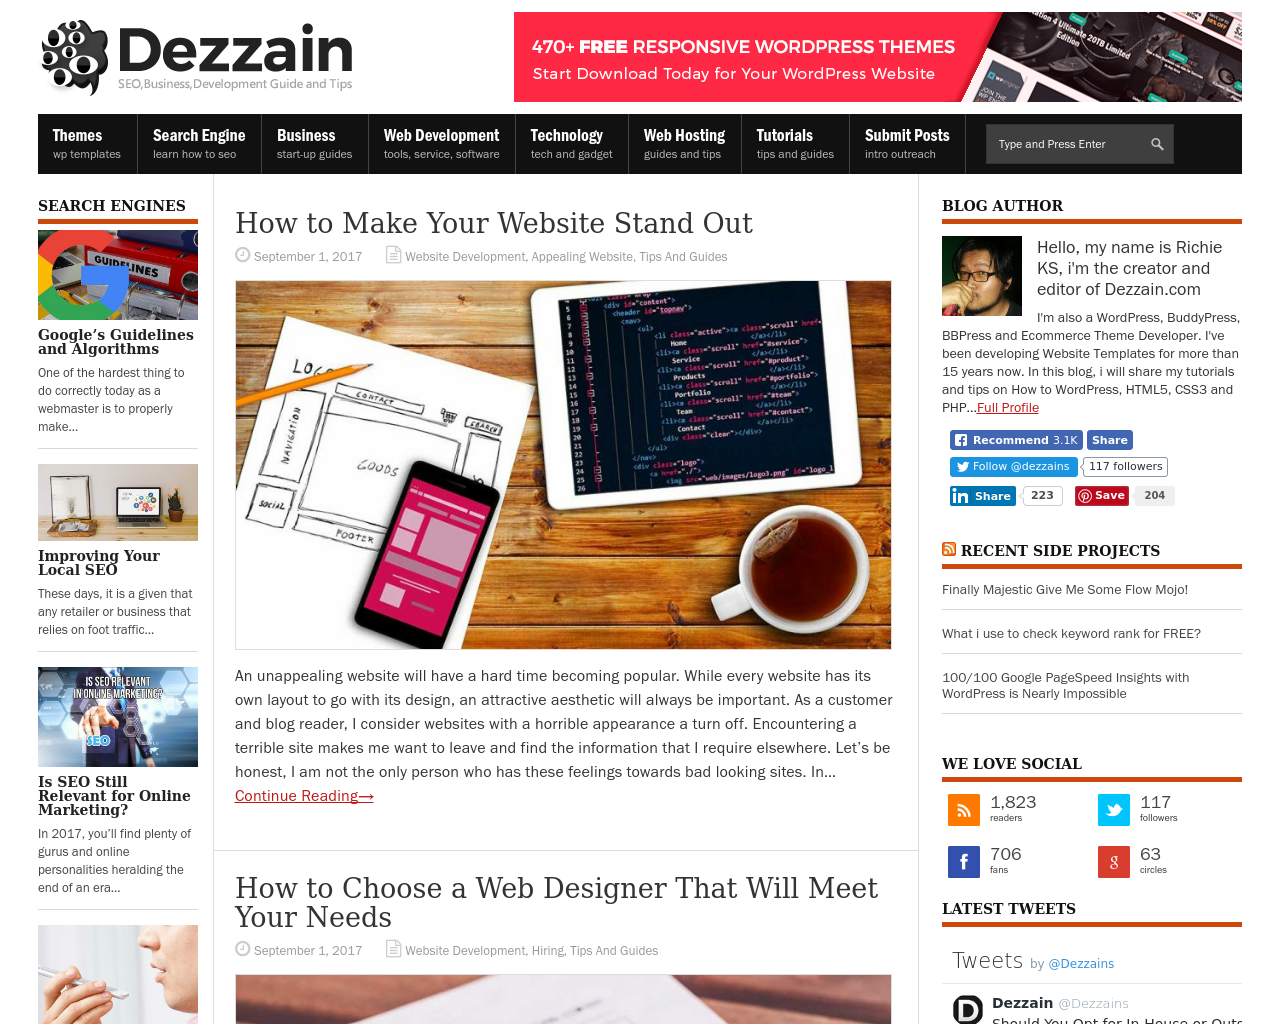 Dezzain-Advertising-Reviews-Pricing